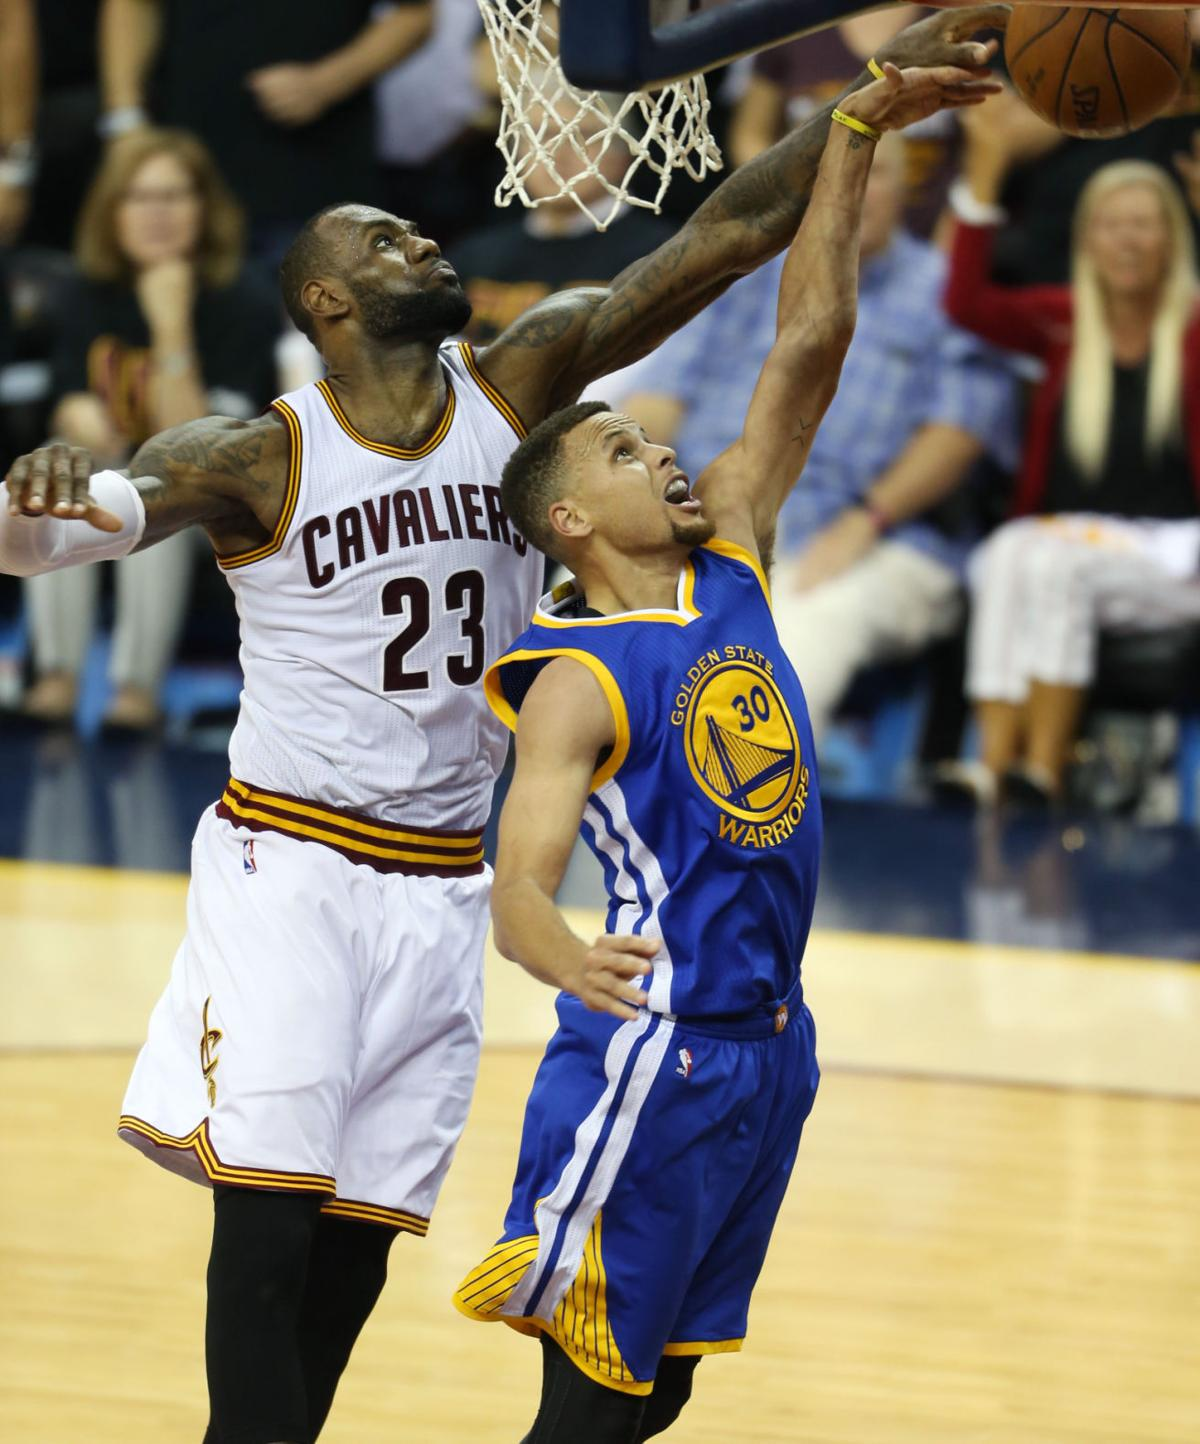 NBA FINALS: LeBron lifts Cavs, Cleveland to cusp of title | Basketball | wiscnews.com